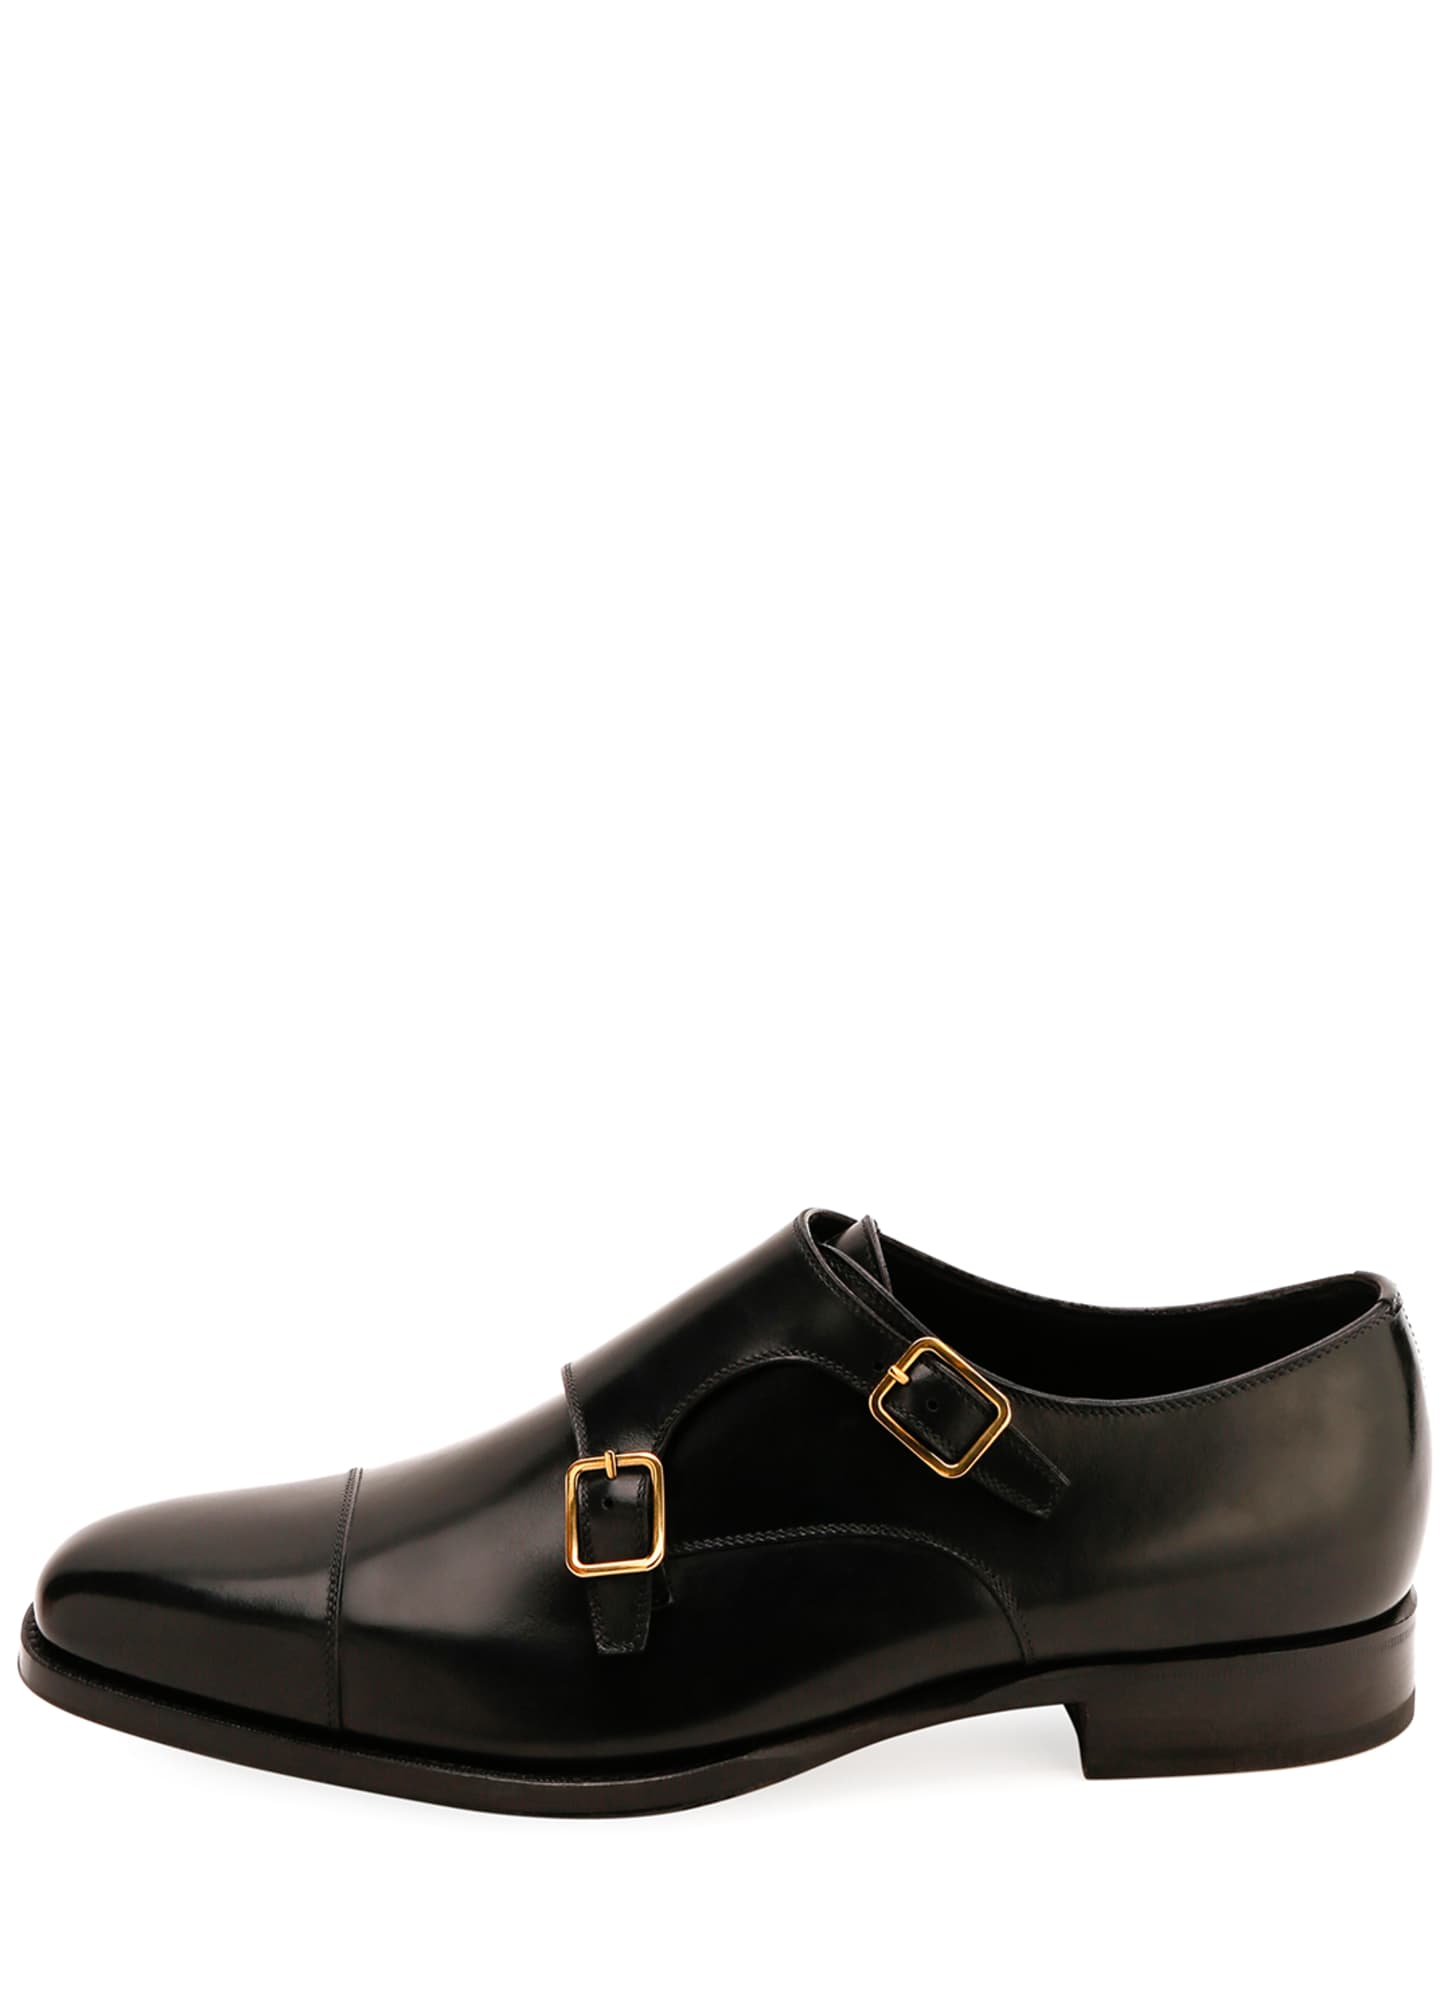 Image 2 of 3: Men's Double-Monk Strap Leather Loafers